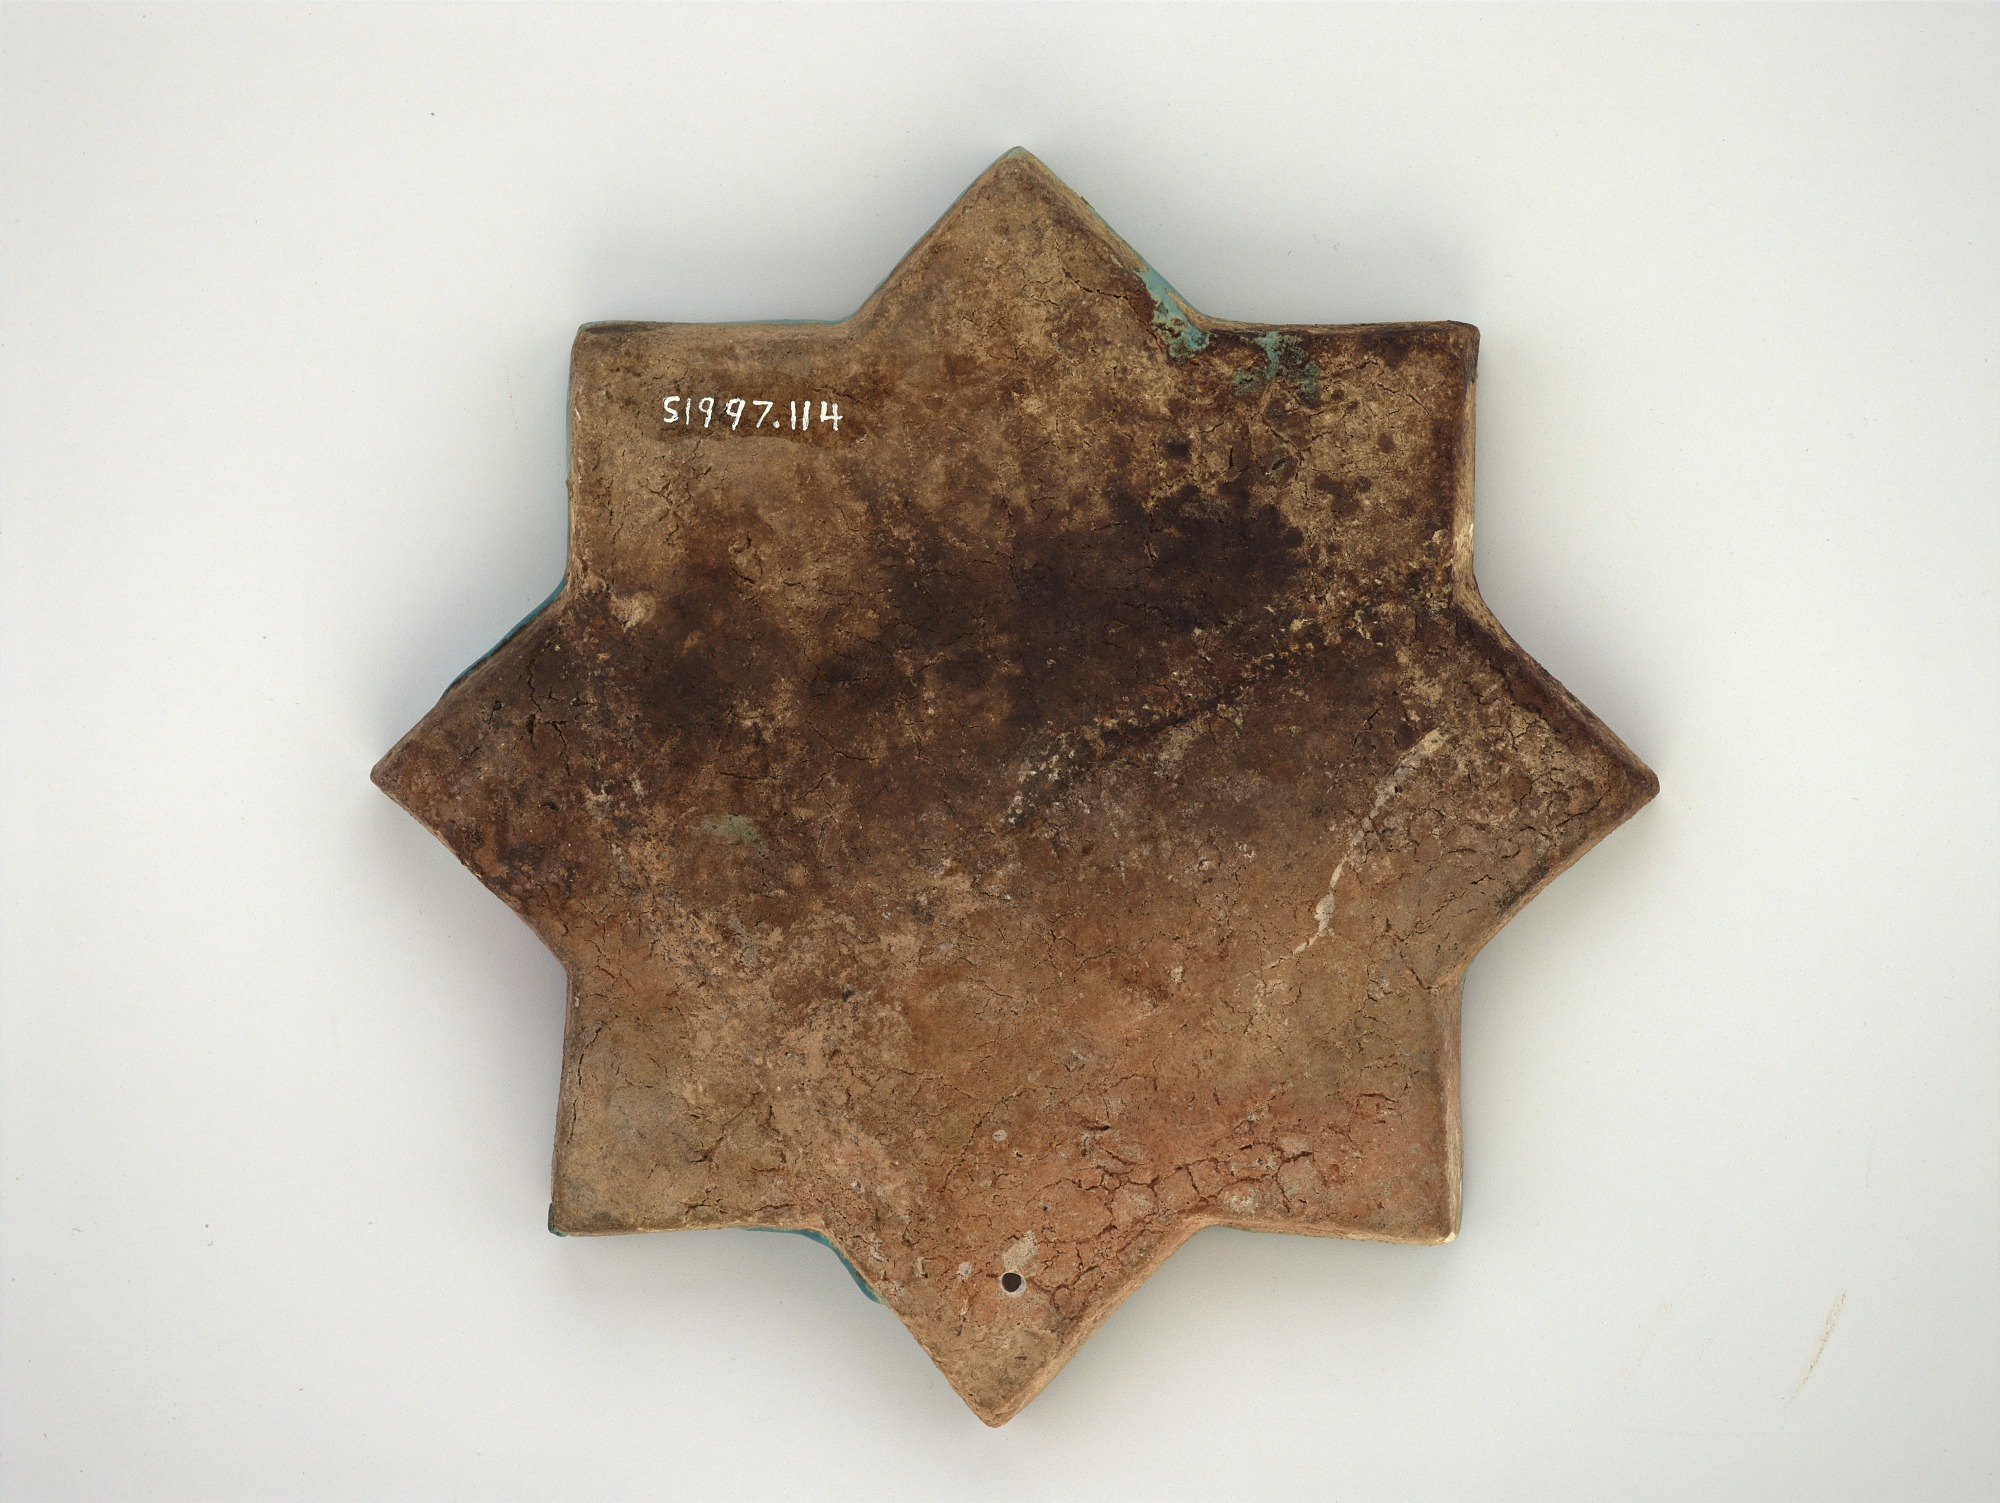 back: Star tile with phoenix